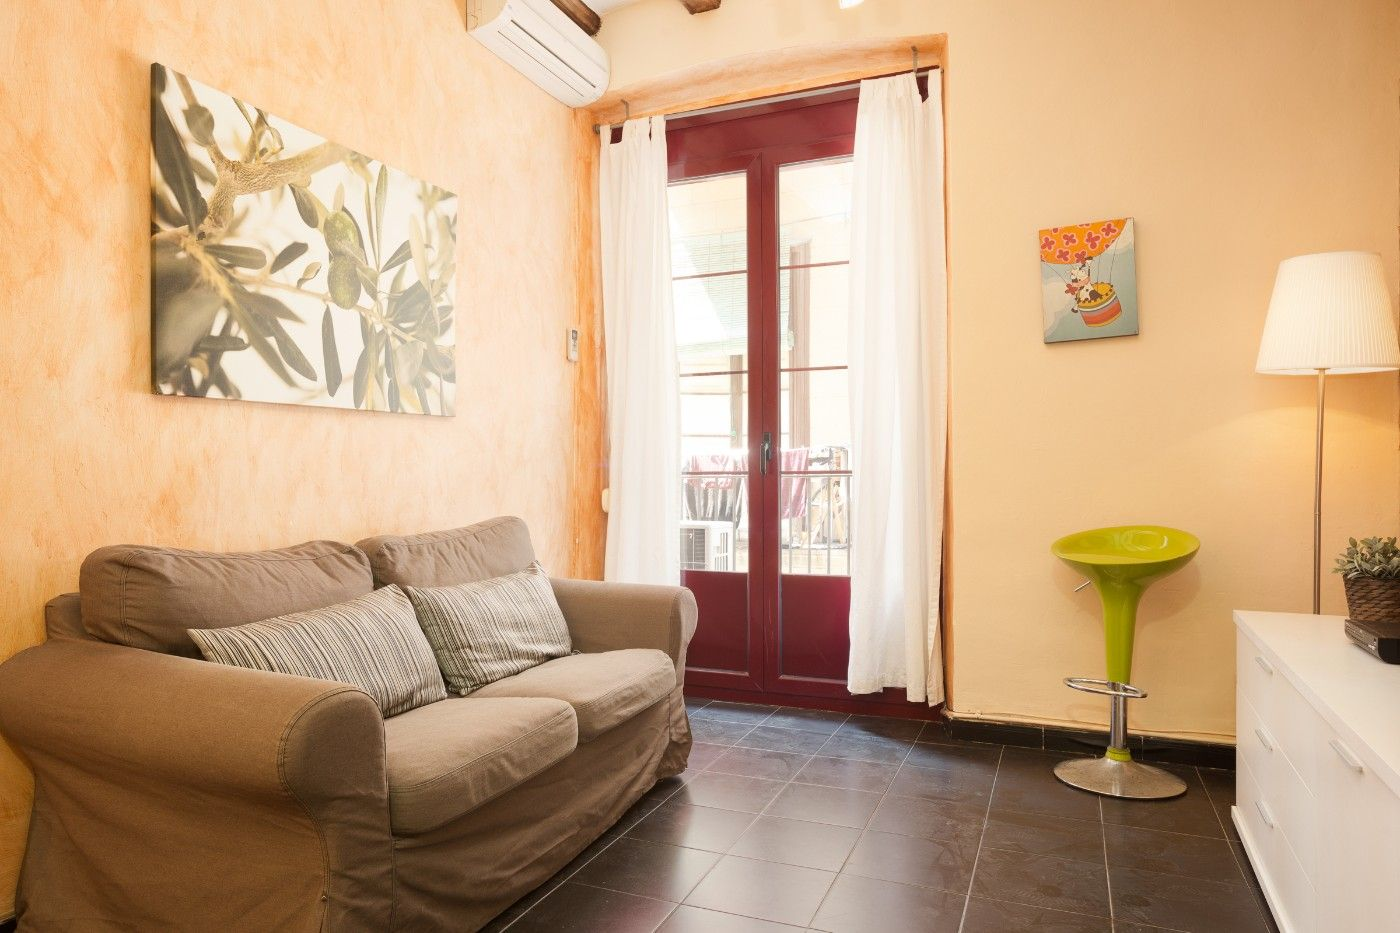 Apartamento en Carrer Guardia, 5